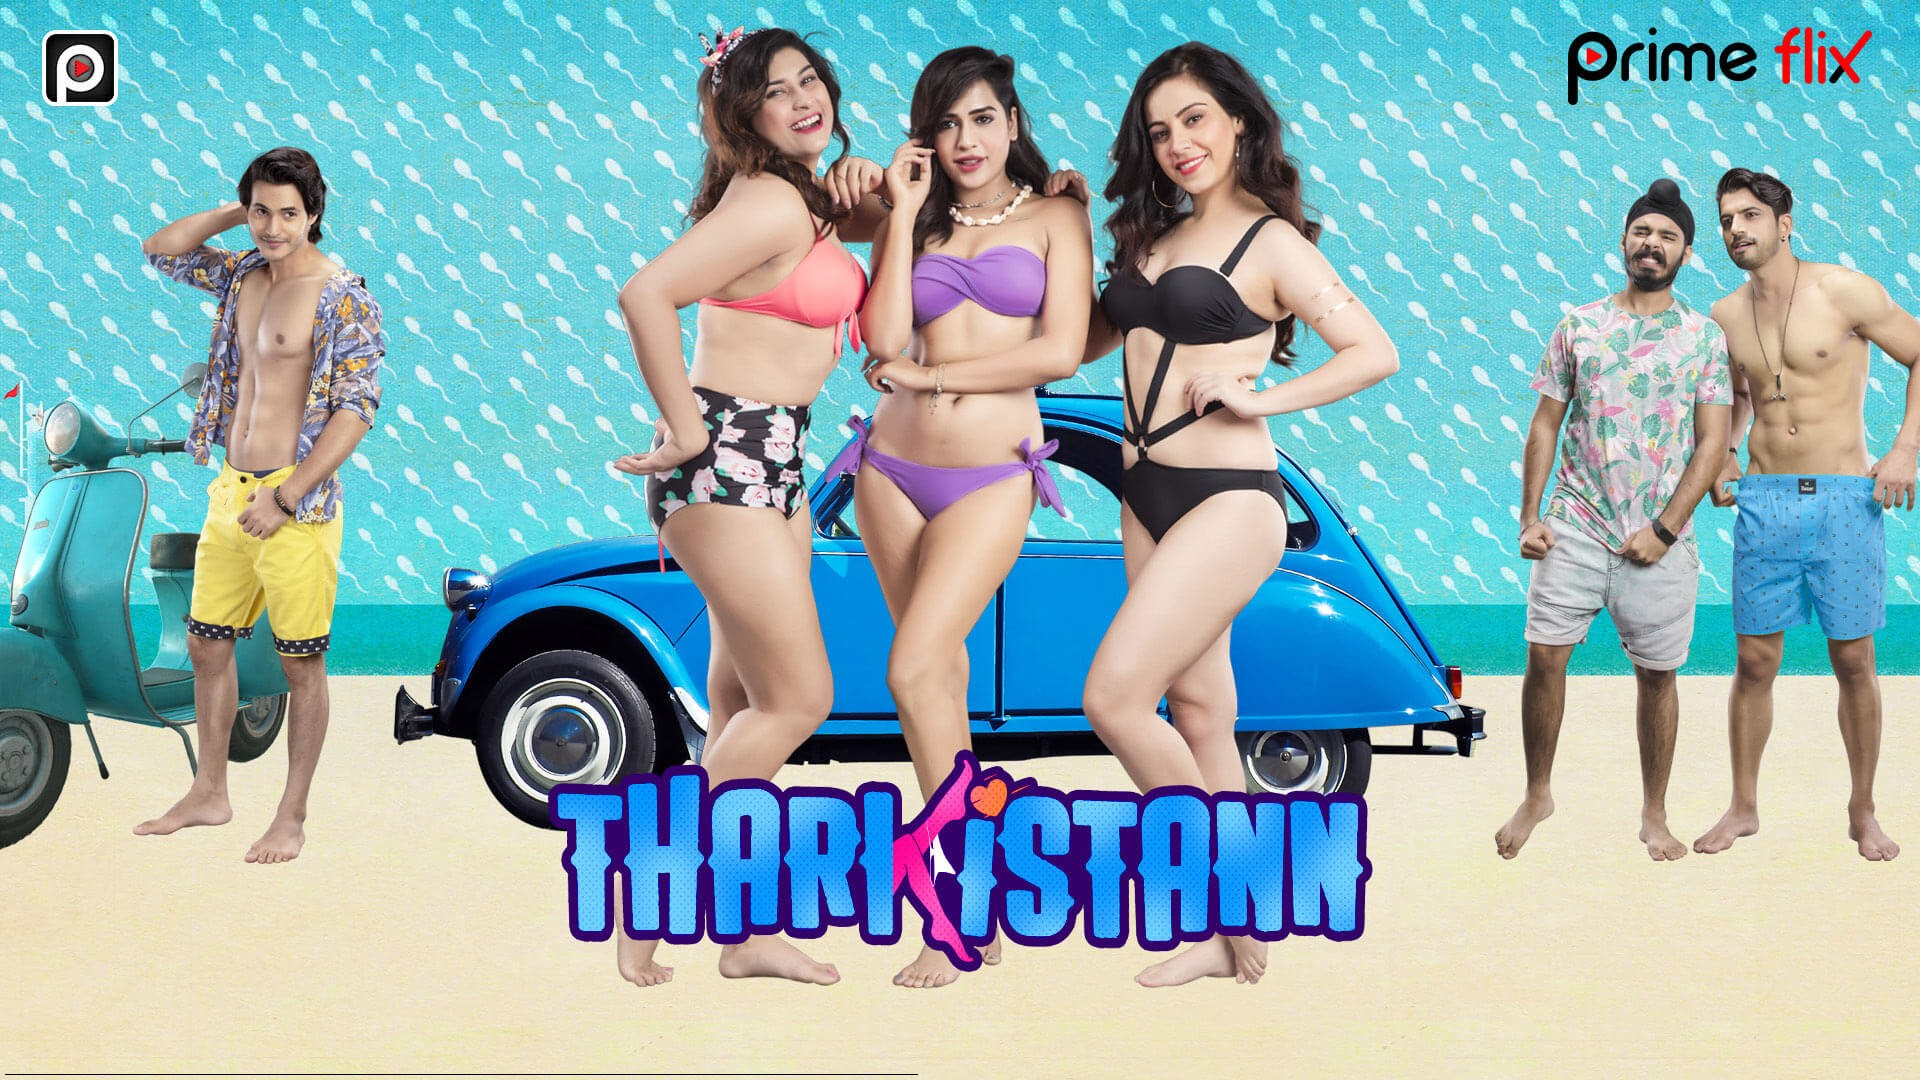 18+ Tharkistann 2019 S01 Hindi Complete Hot Web Series 689MB HDRip Download